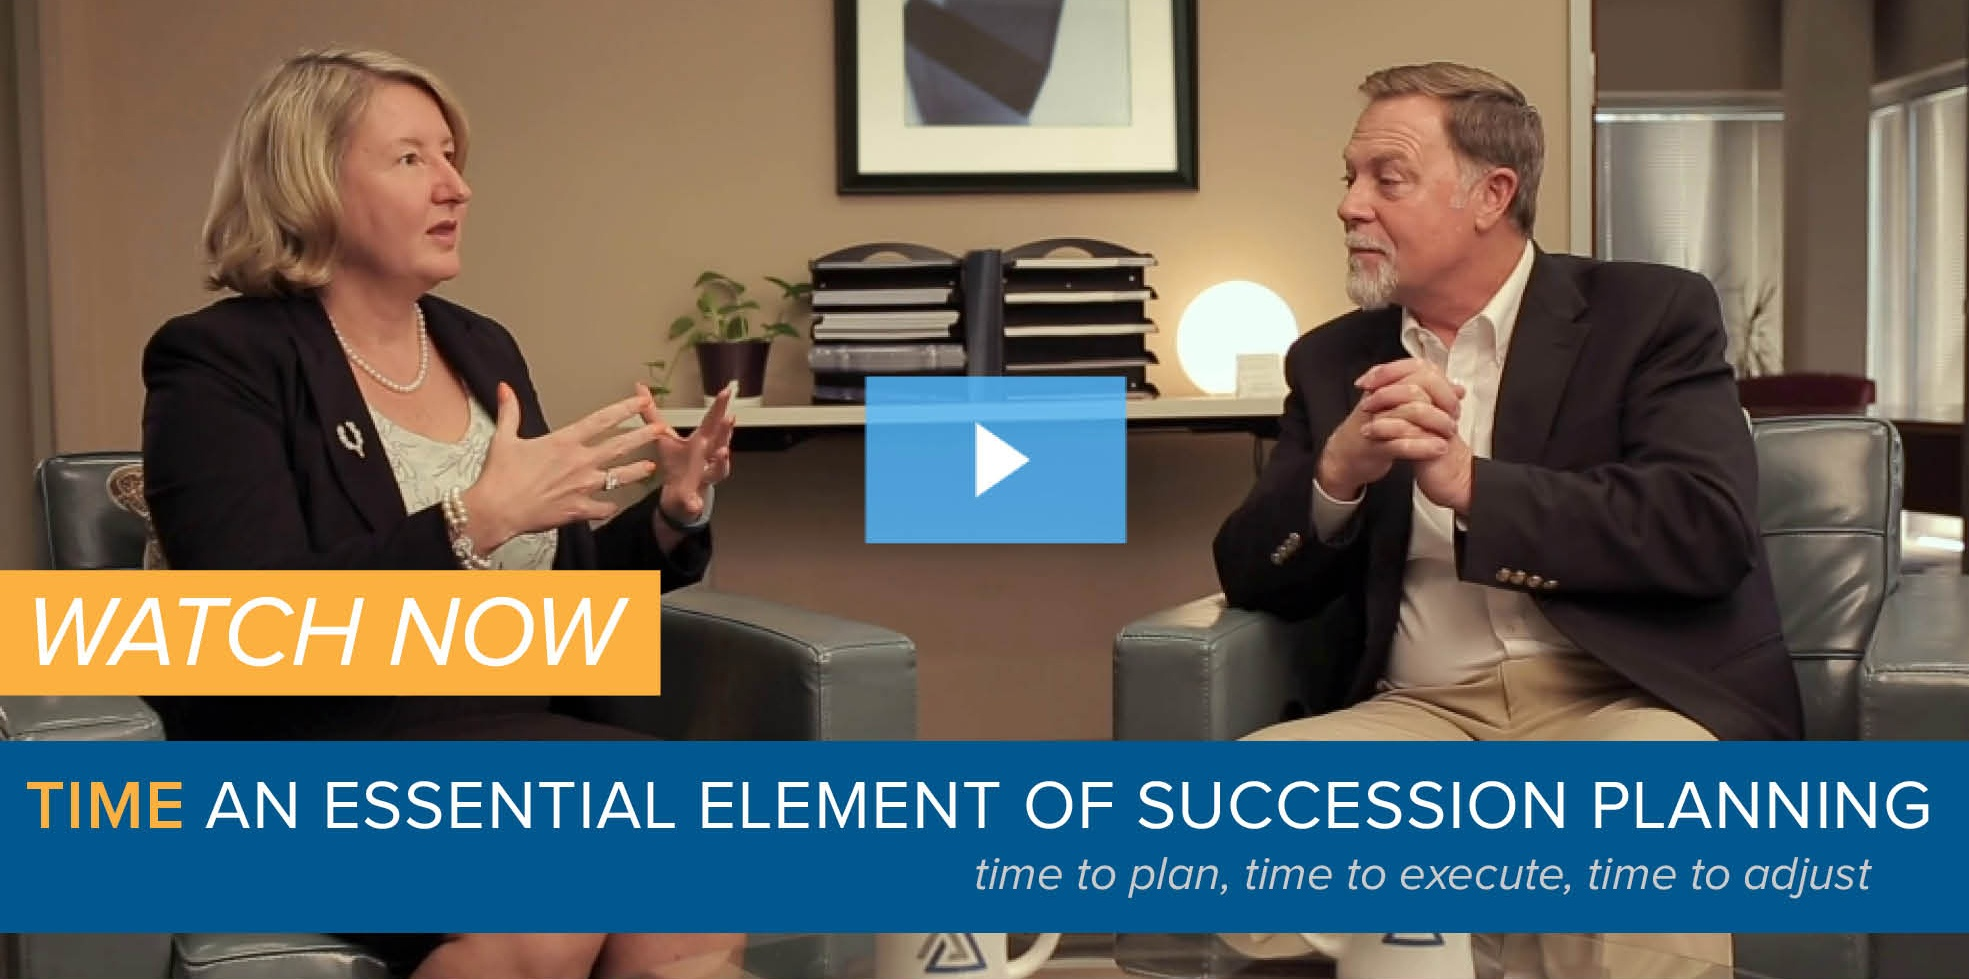 WATCH NOW Time - An Essential Element of Succession Planning